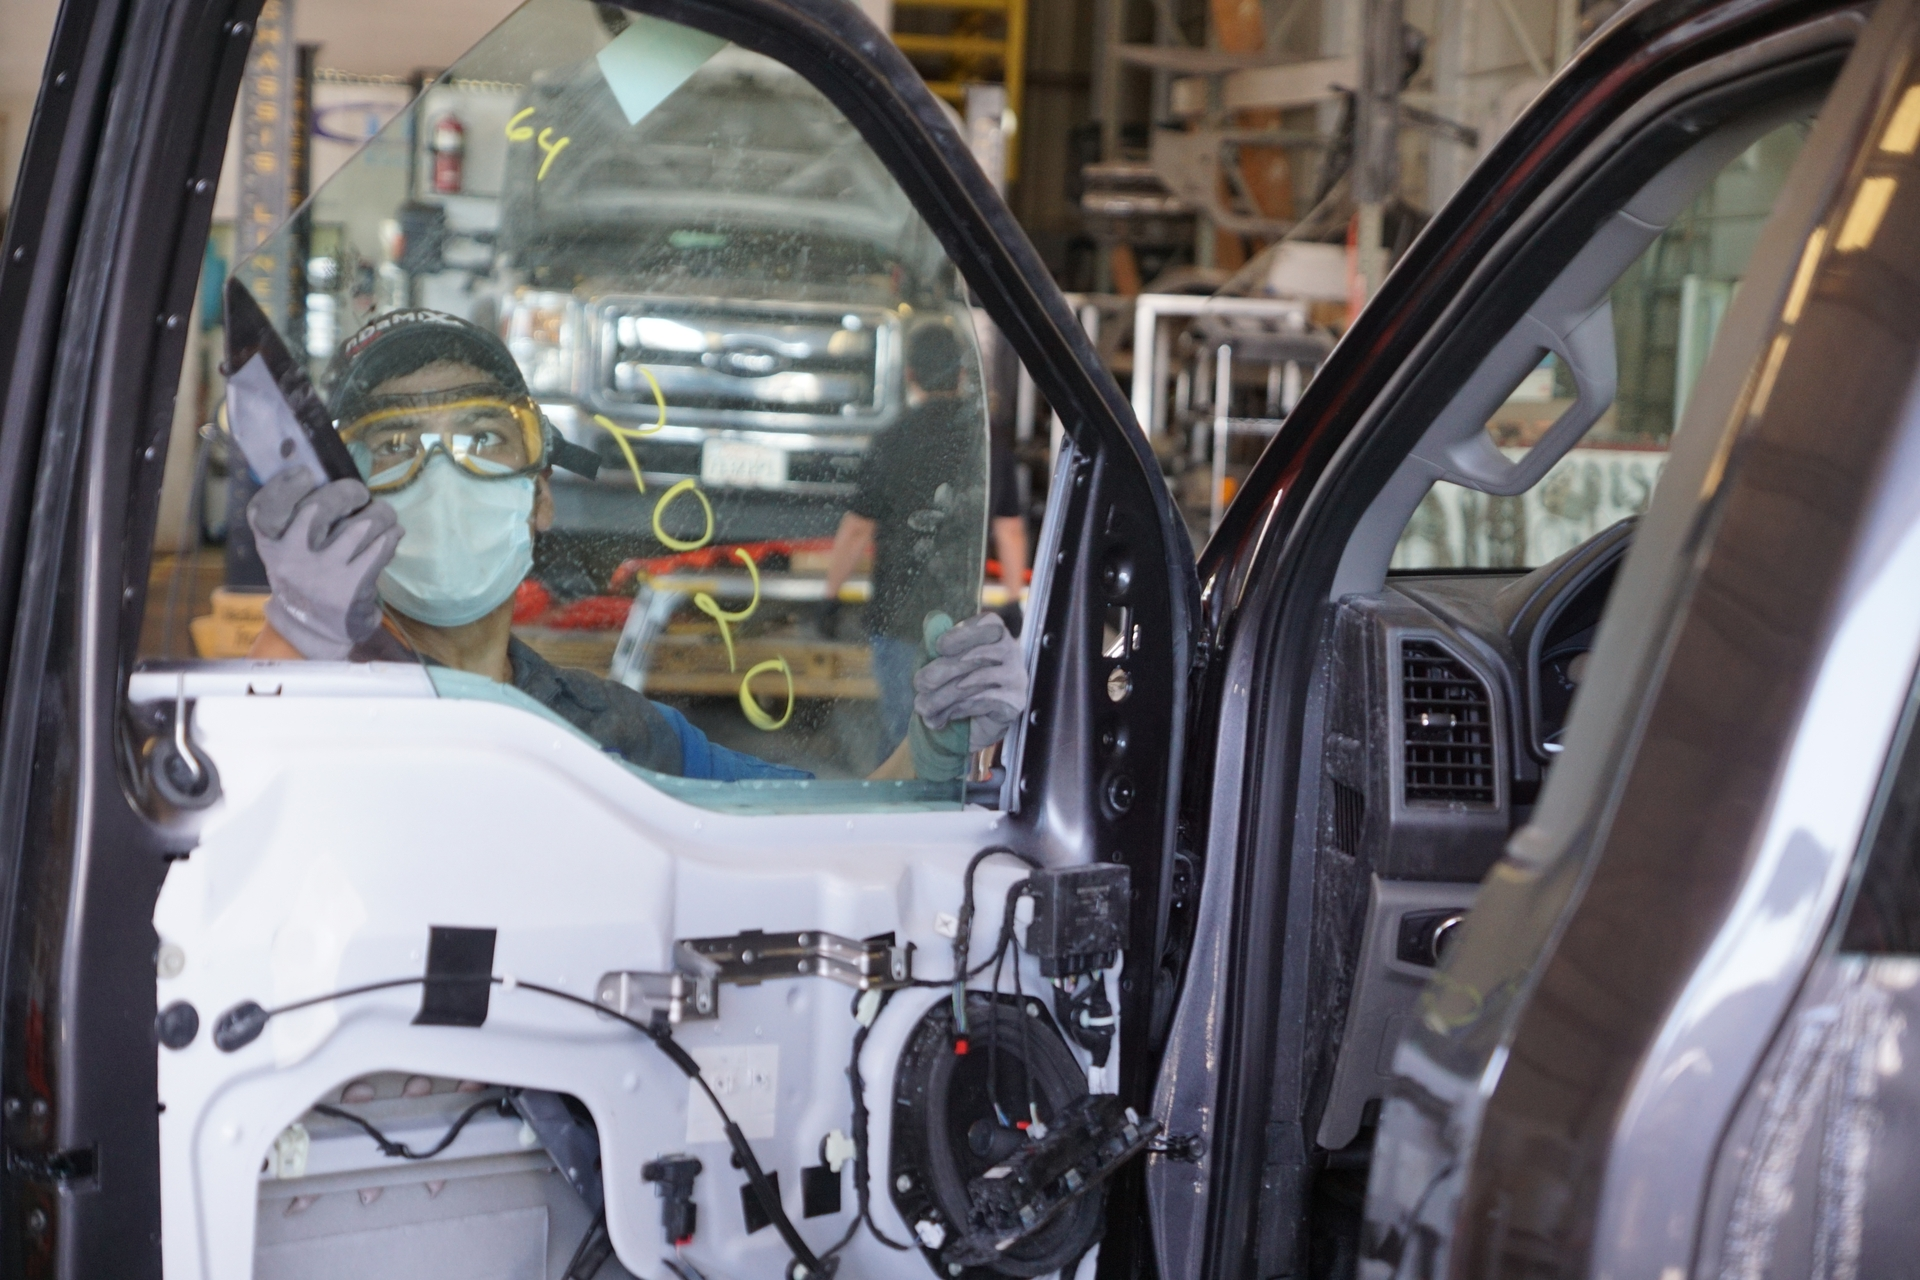 An employee at the Inland Body and Paint Center in Fontana works on an SCE truck.